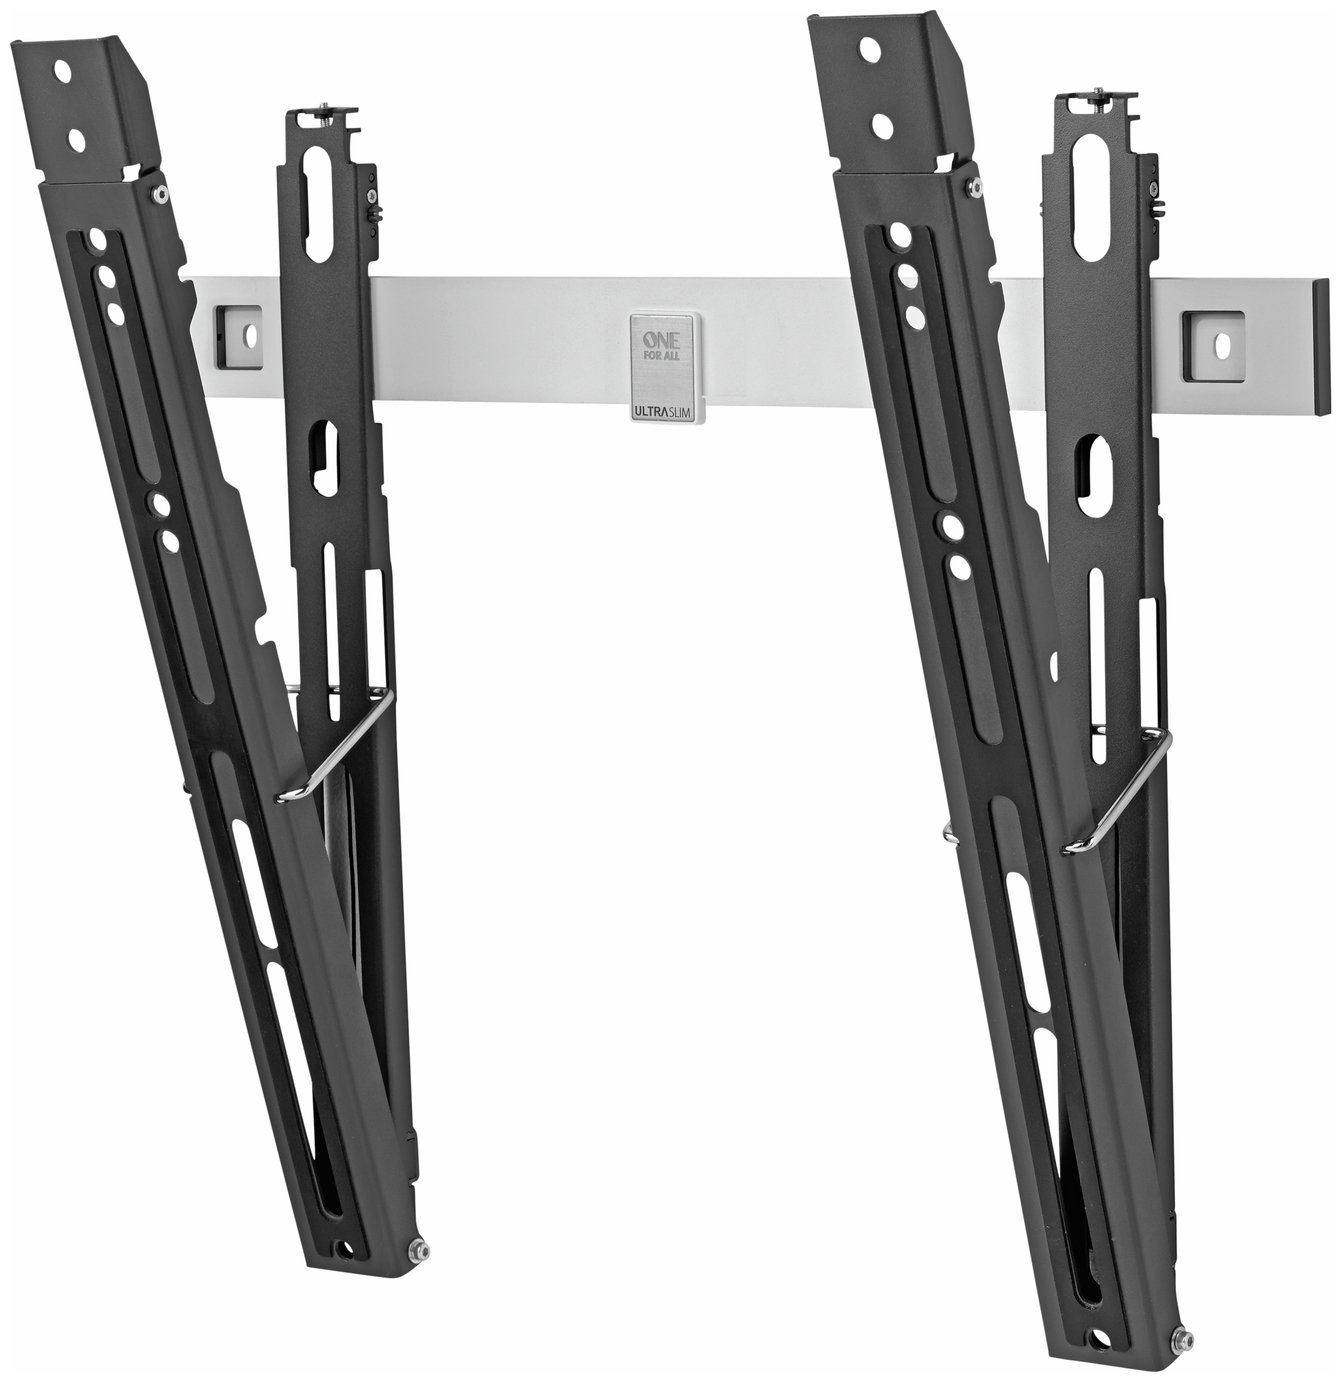 One For All WM6421 Ultra Slim 32 - 65in Tilt TV Wall Bracket